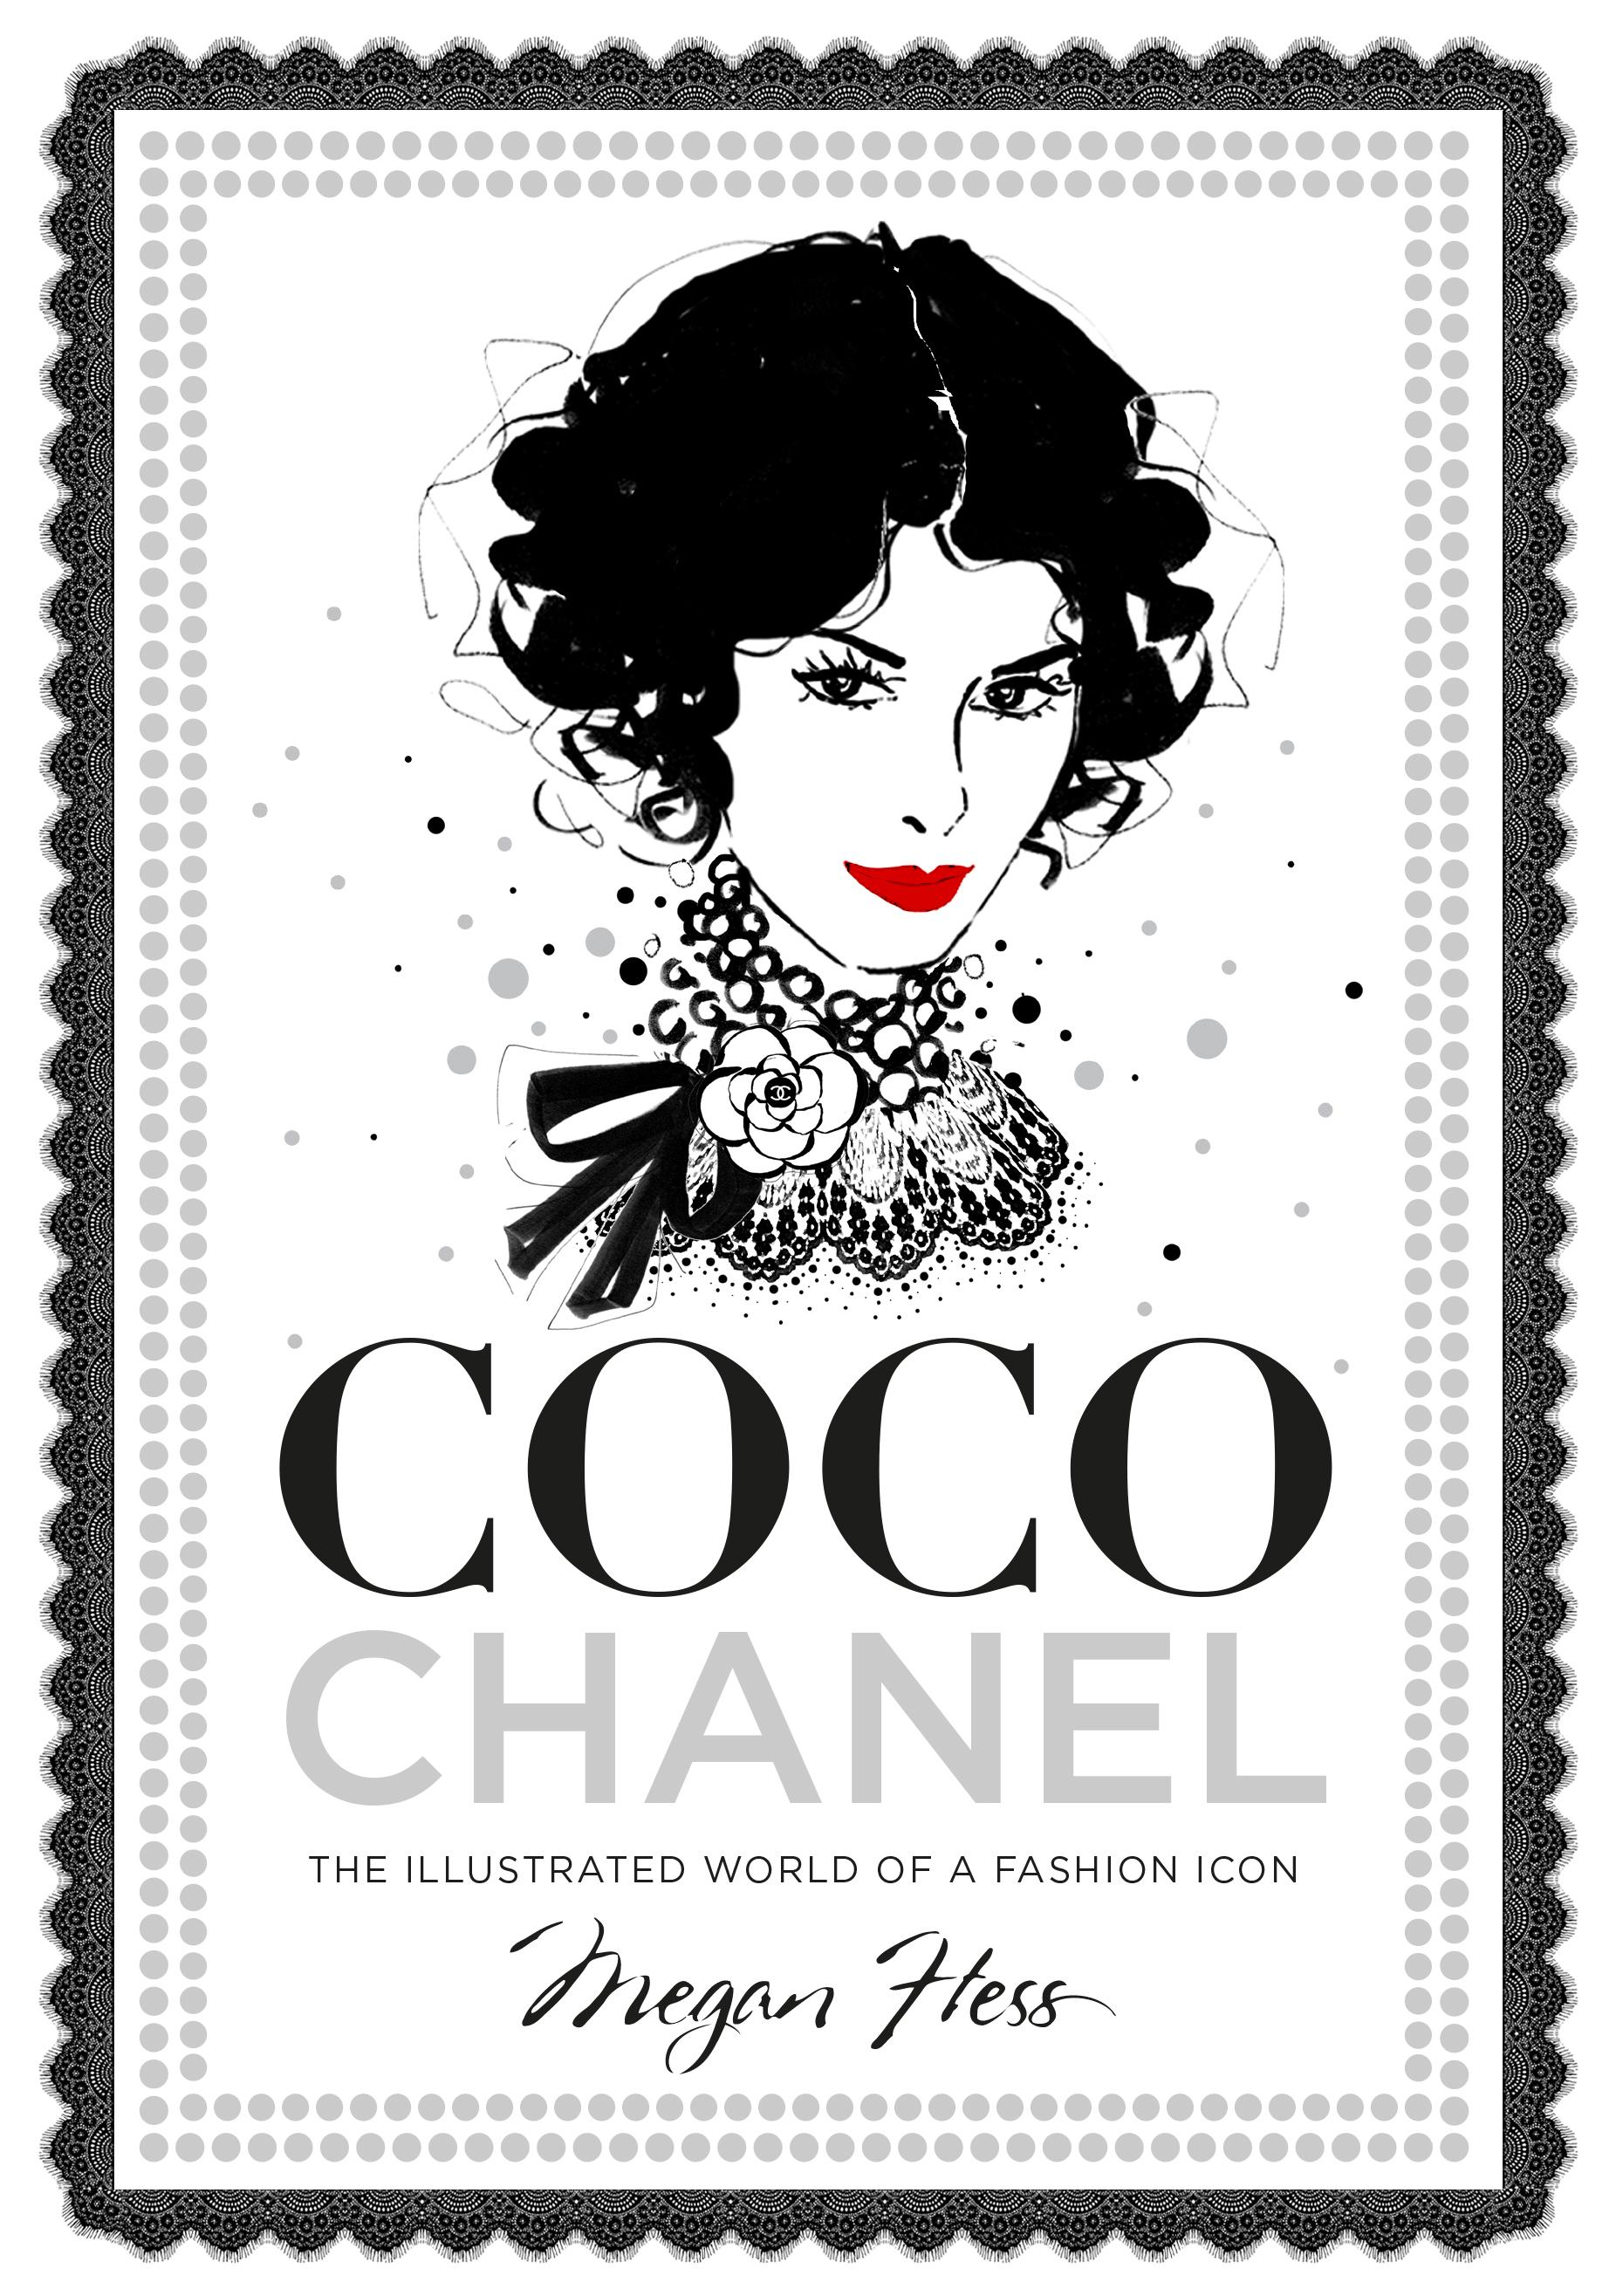 8d8e1ea689f Coco Chanel  The Illustrated World of a Fashion Icon by Megan Hess ...